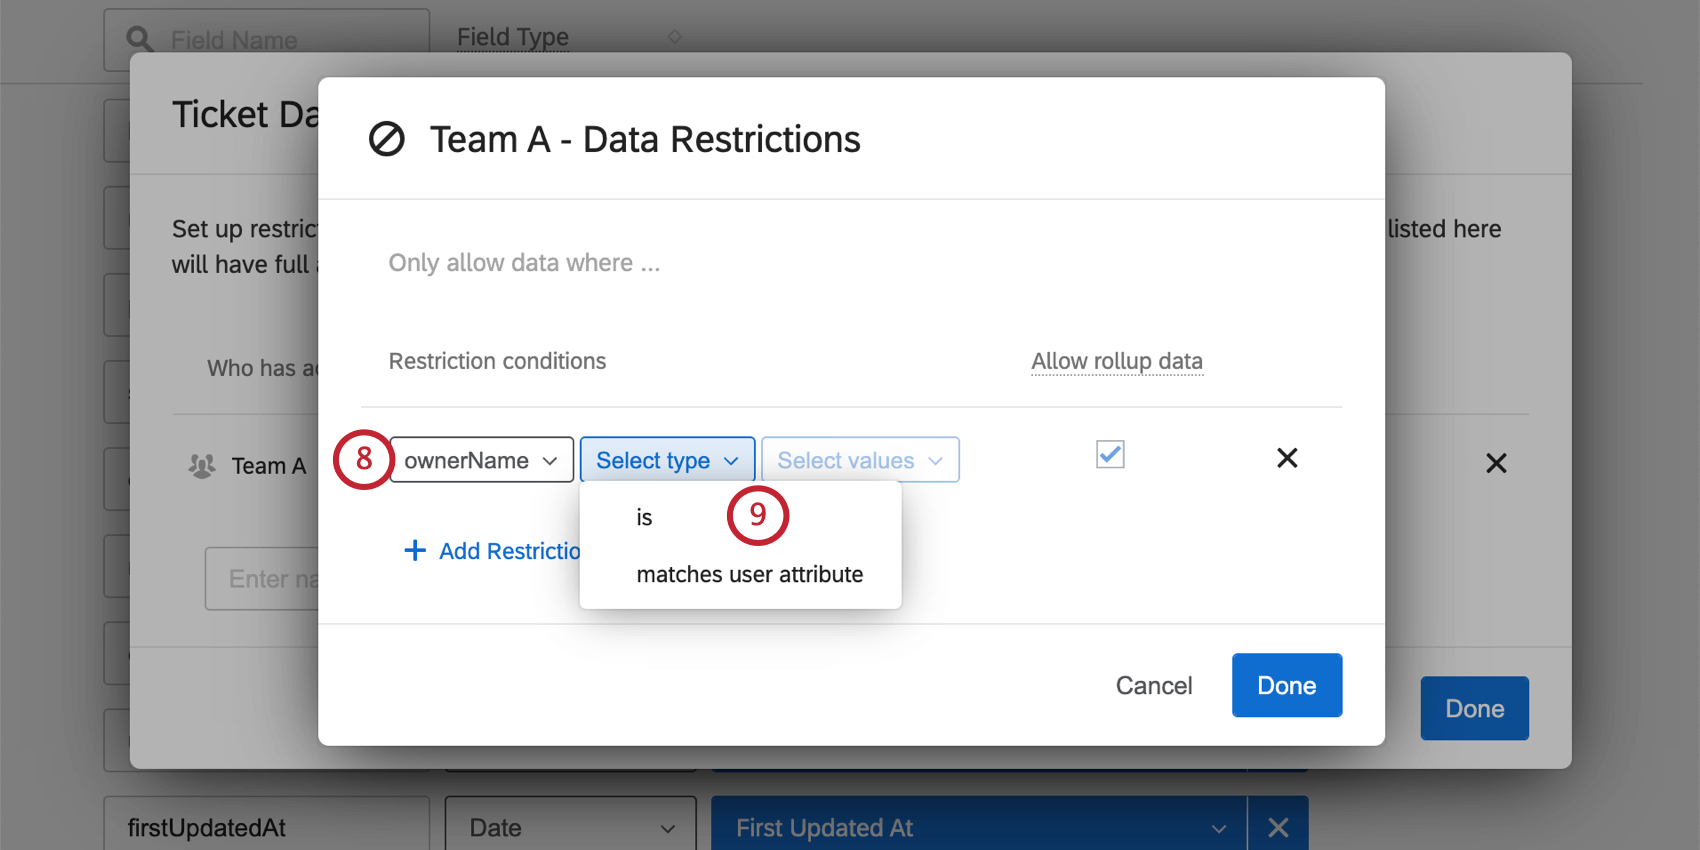 Selecting ticket data fields from the dropdowns